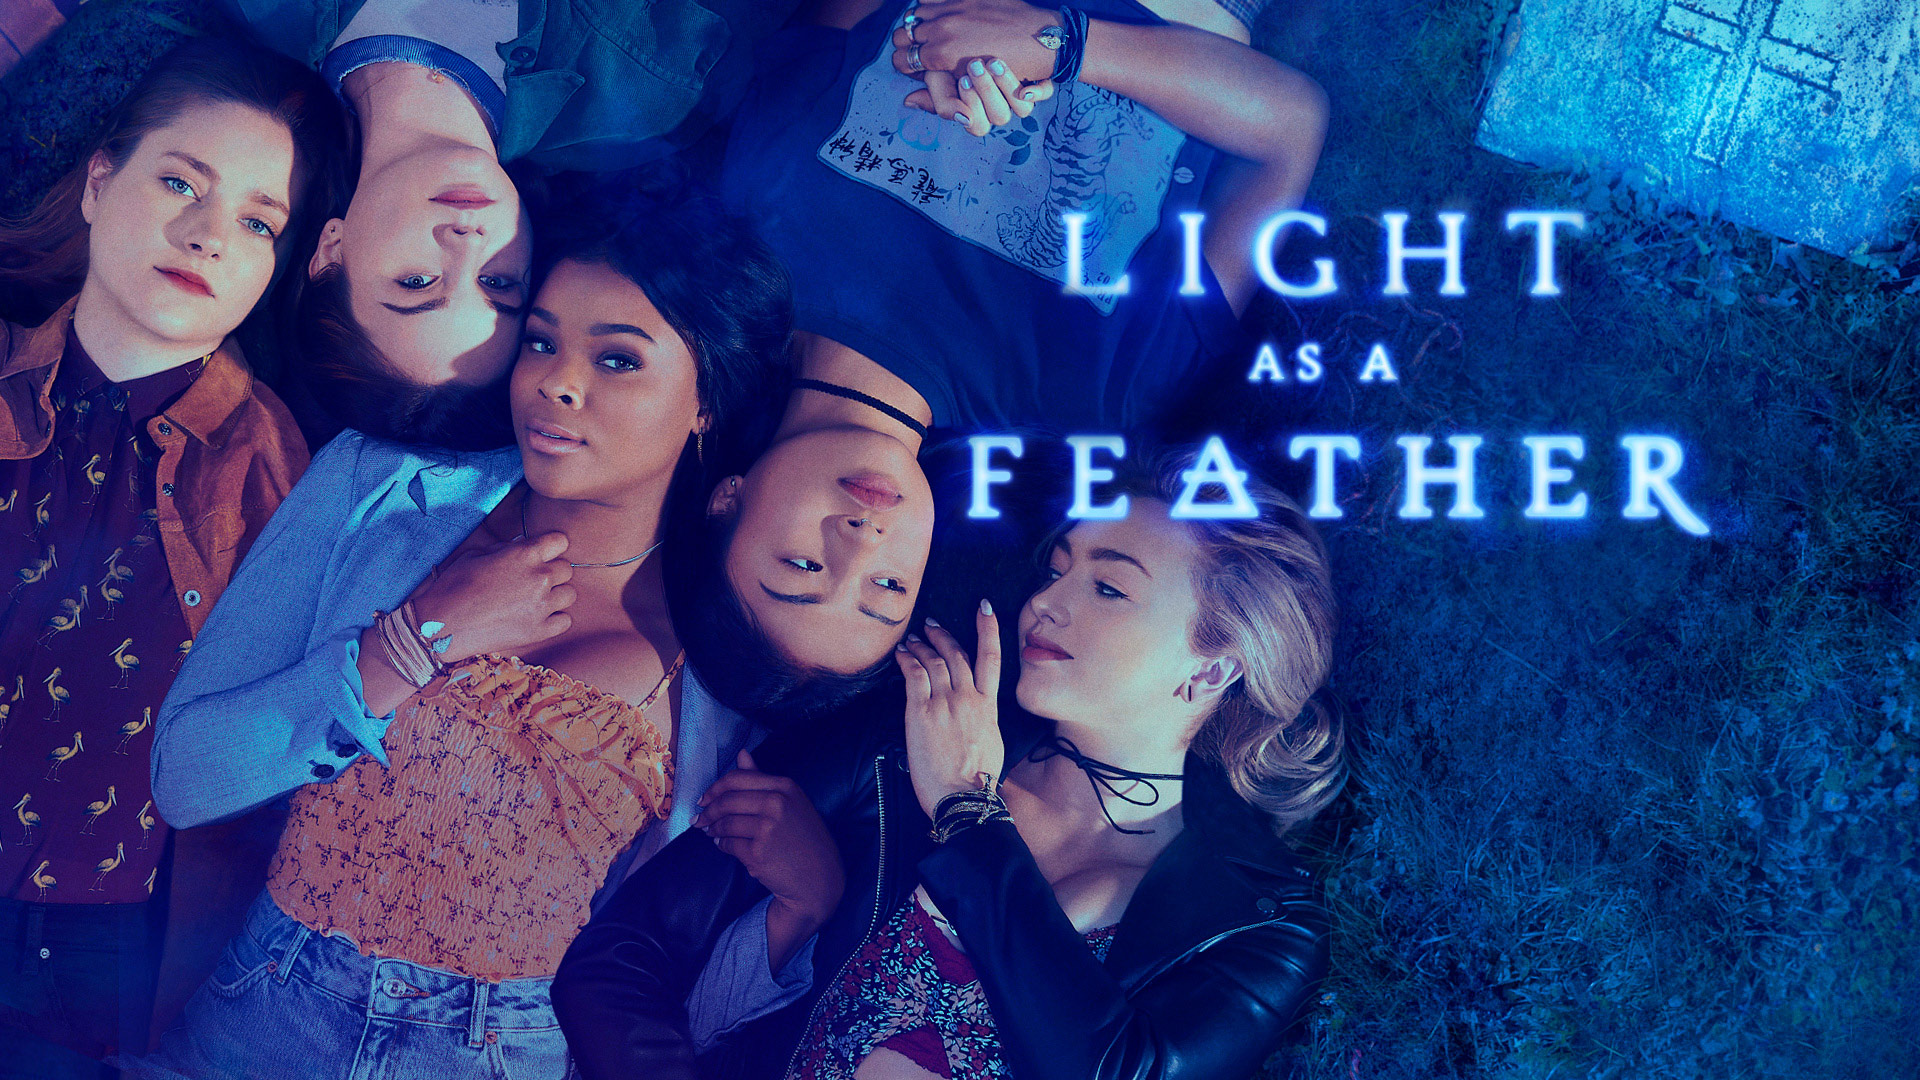 Light as a Feather will not have a third season